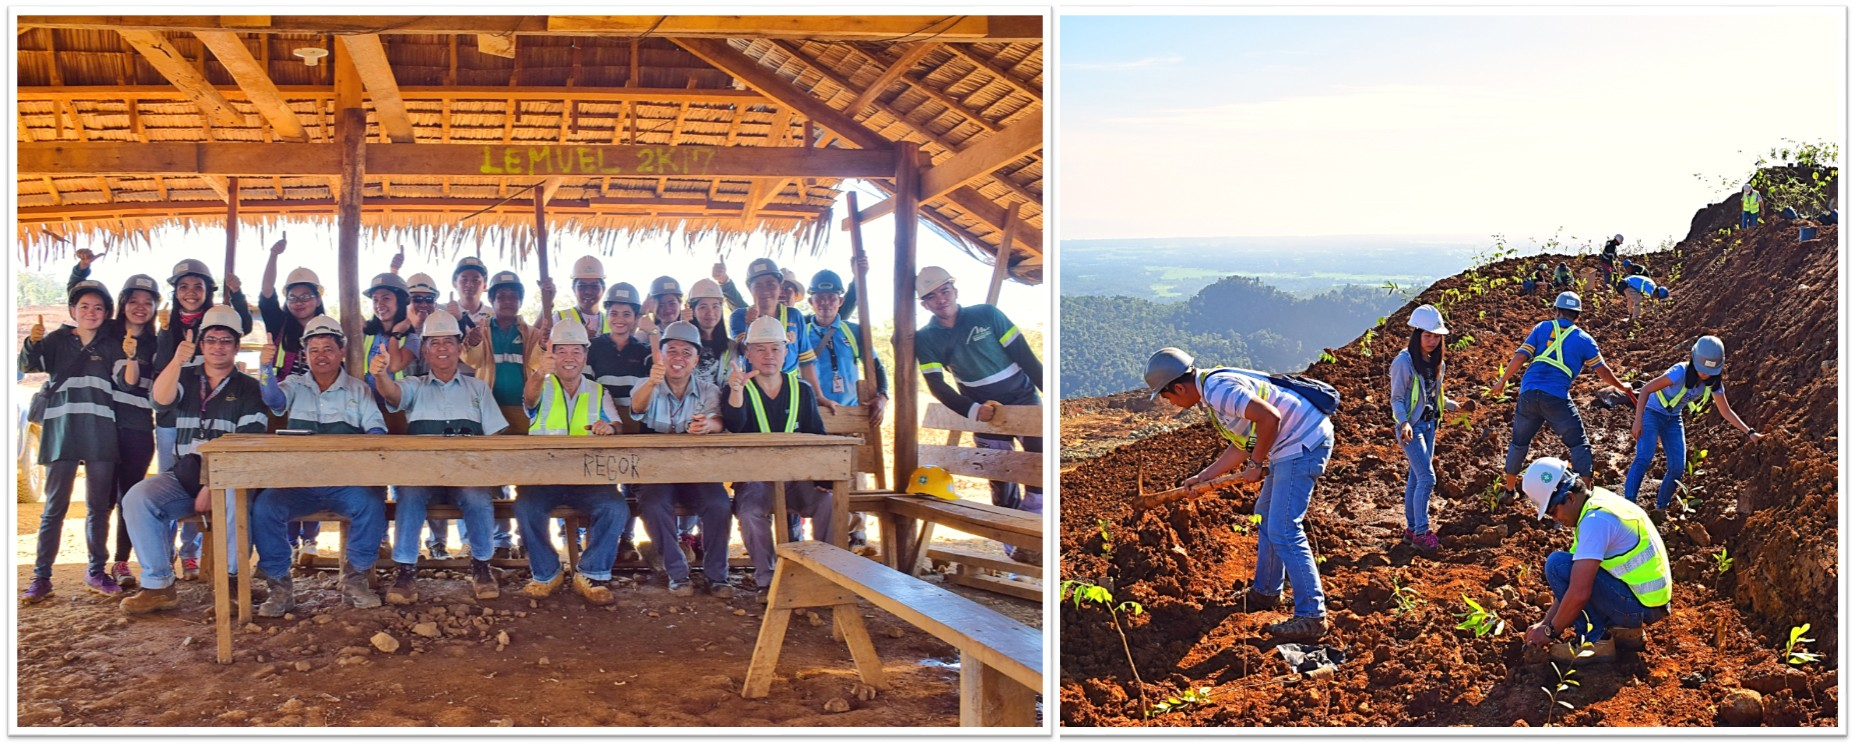 Marcventures employees see planting trees as a moral obligation to future generations